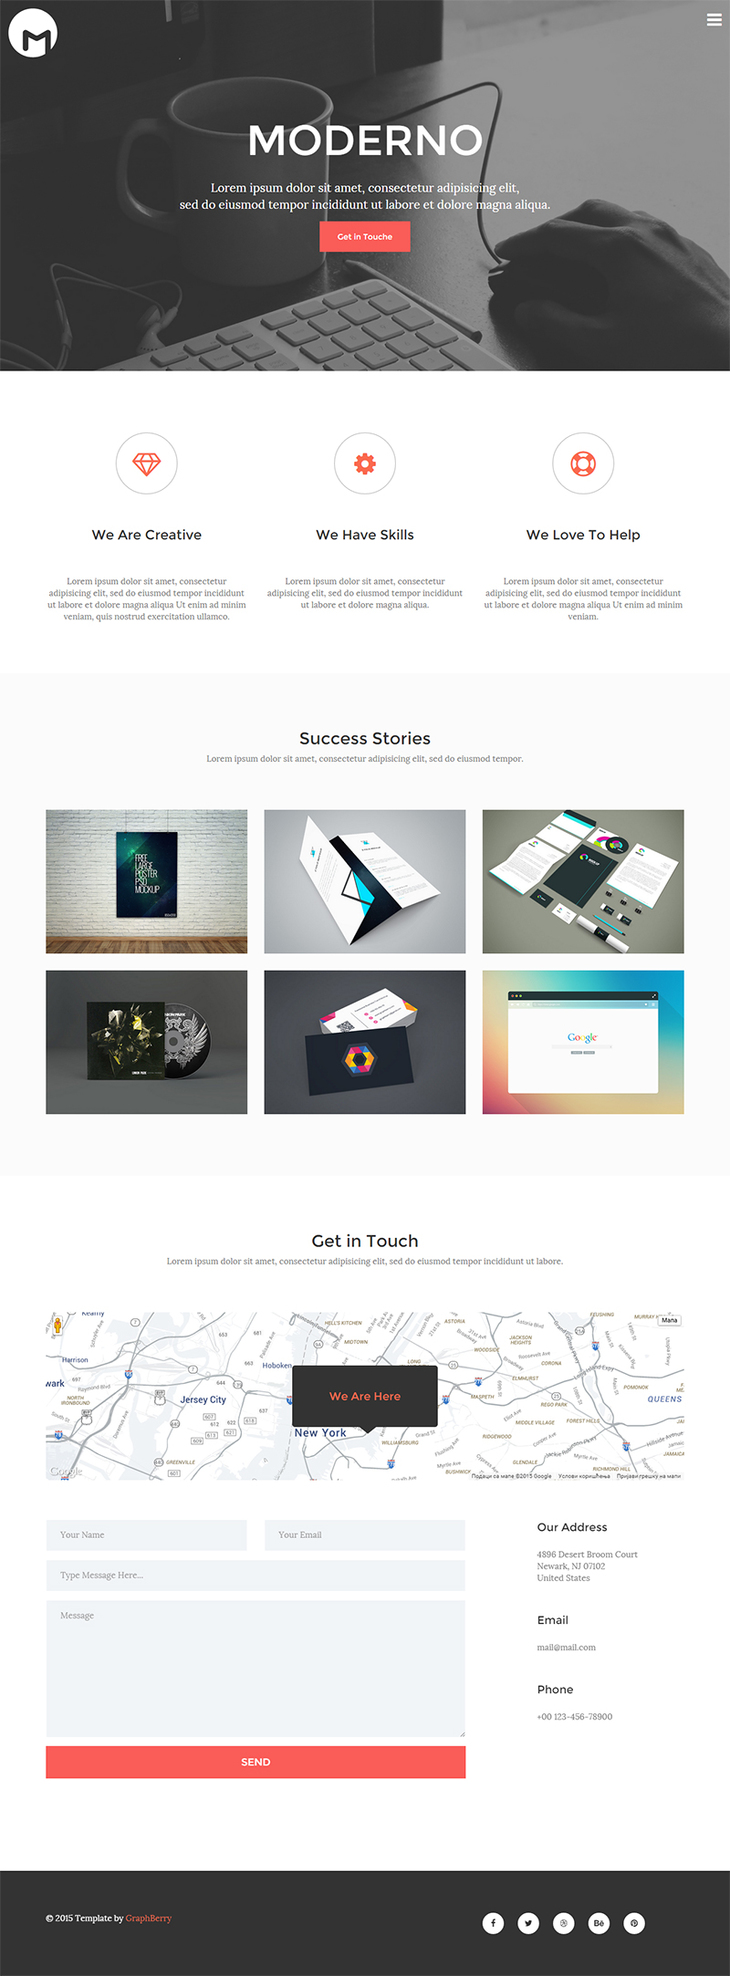 moderno free html5 responsive template preview